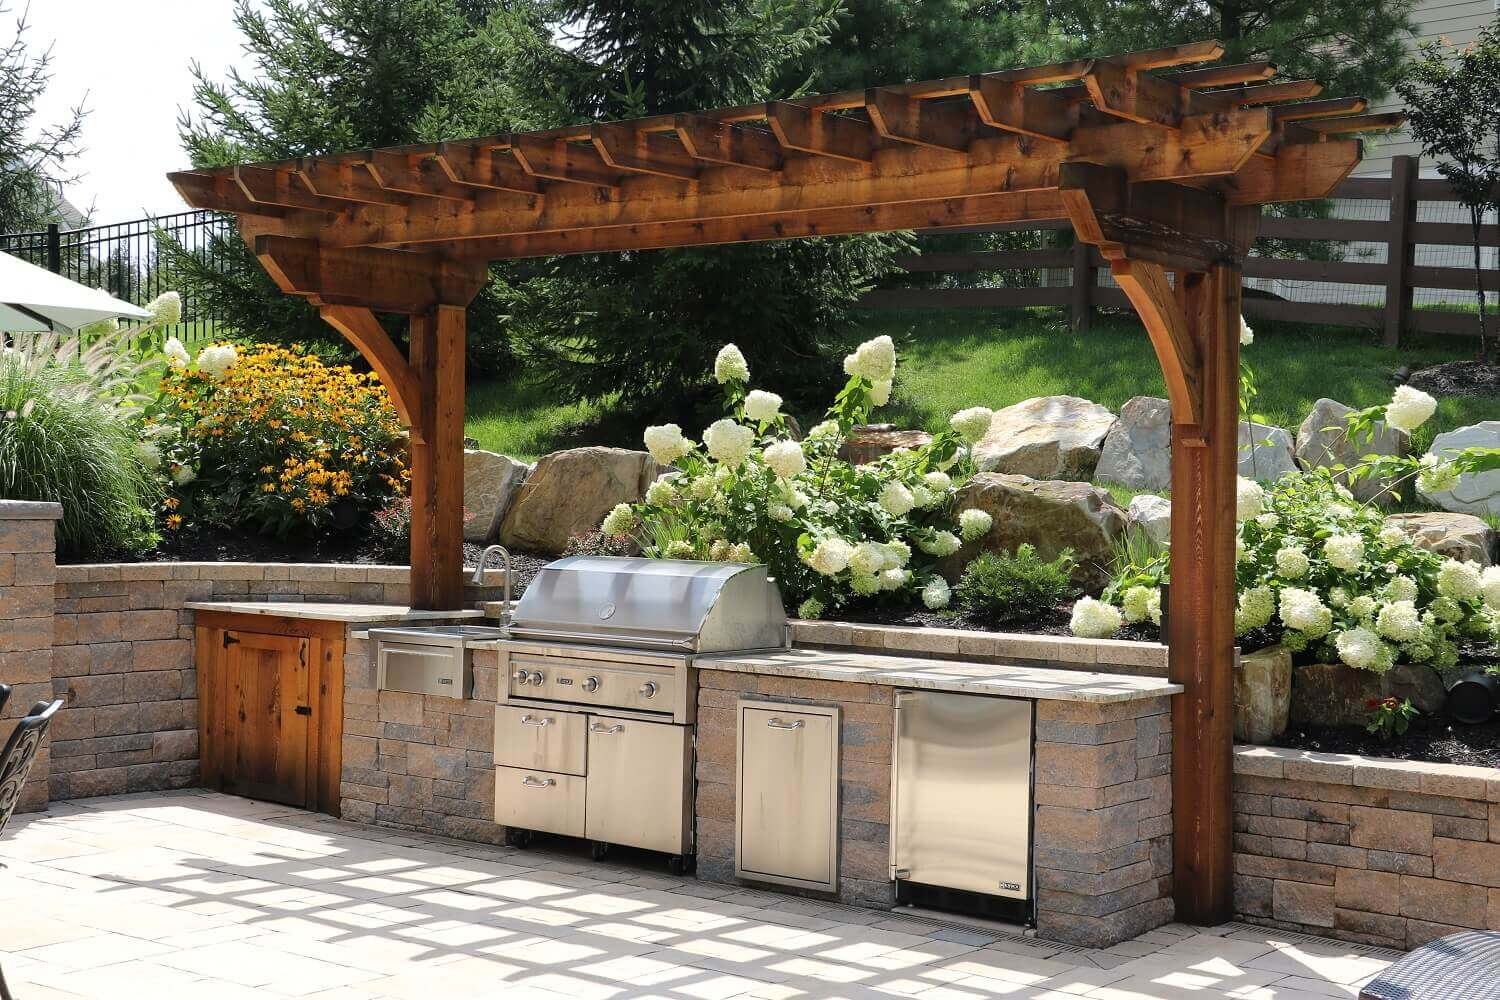 outdoor kitchen pergola free standing techobloc outdoor kitchen with sink gas grill trash and fridge cedar pergola cabinet custom built kitchens grills burkholder landscape